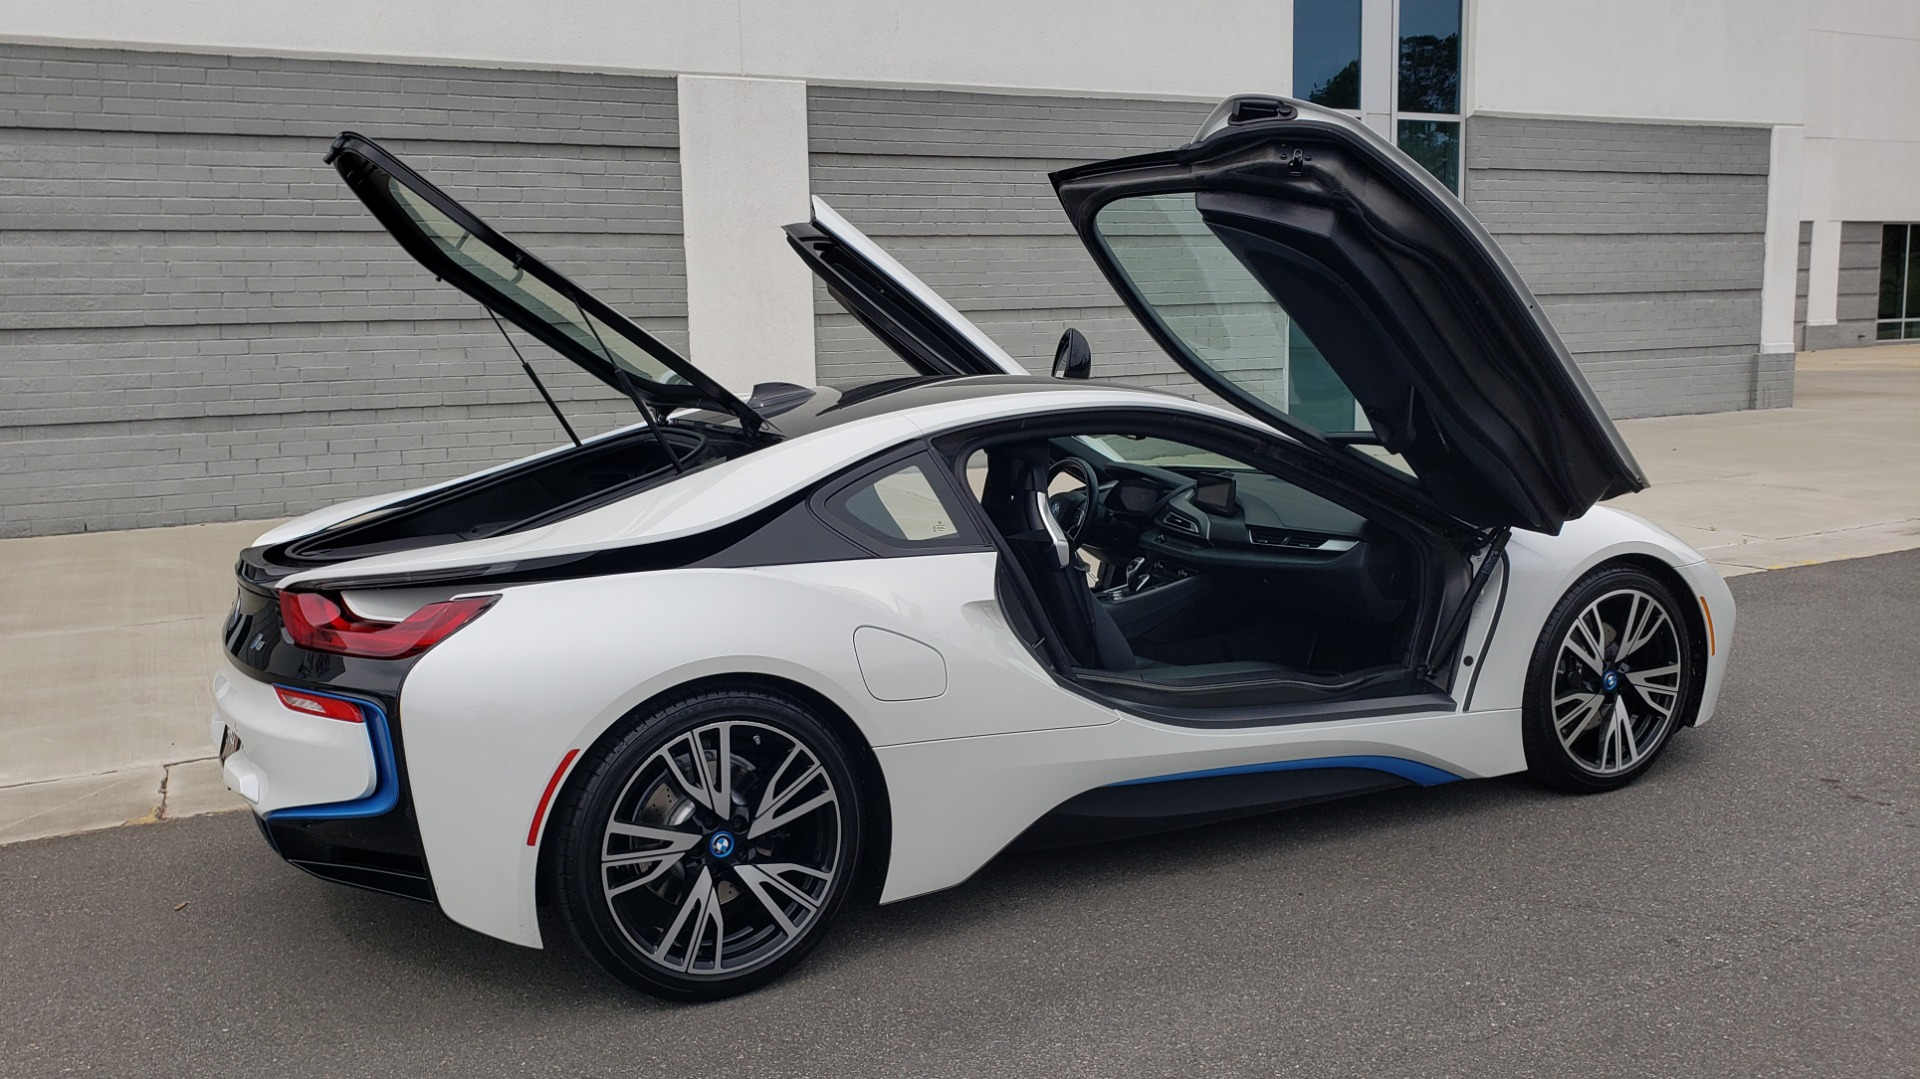 Used 2016 BMW i8 COUPE / GIGA WORLD / NAV / HUD / 20IN WHEELS / REARVIEW for sale Sold at Formula Imports in Charlotte NC 28227 16